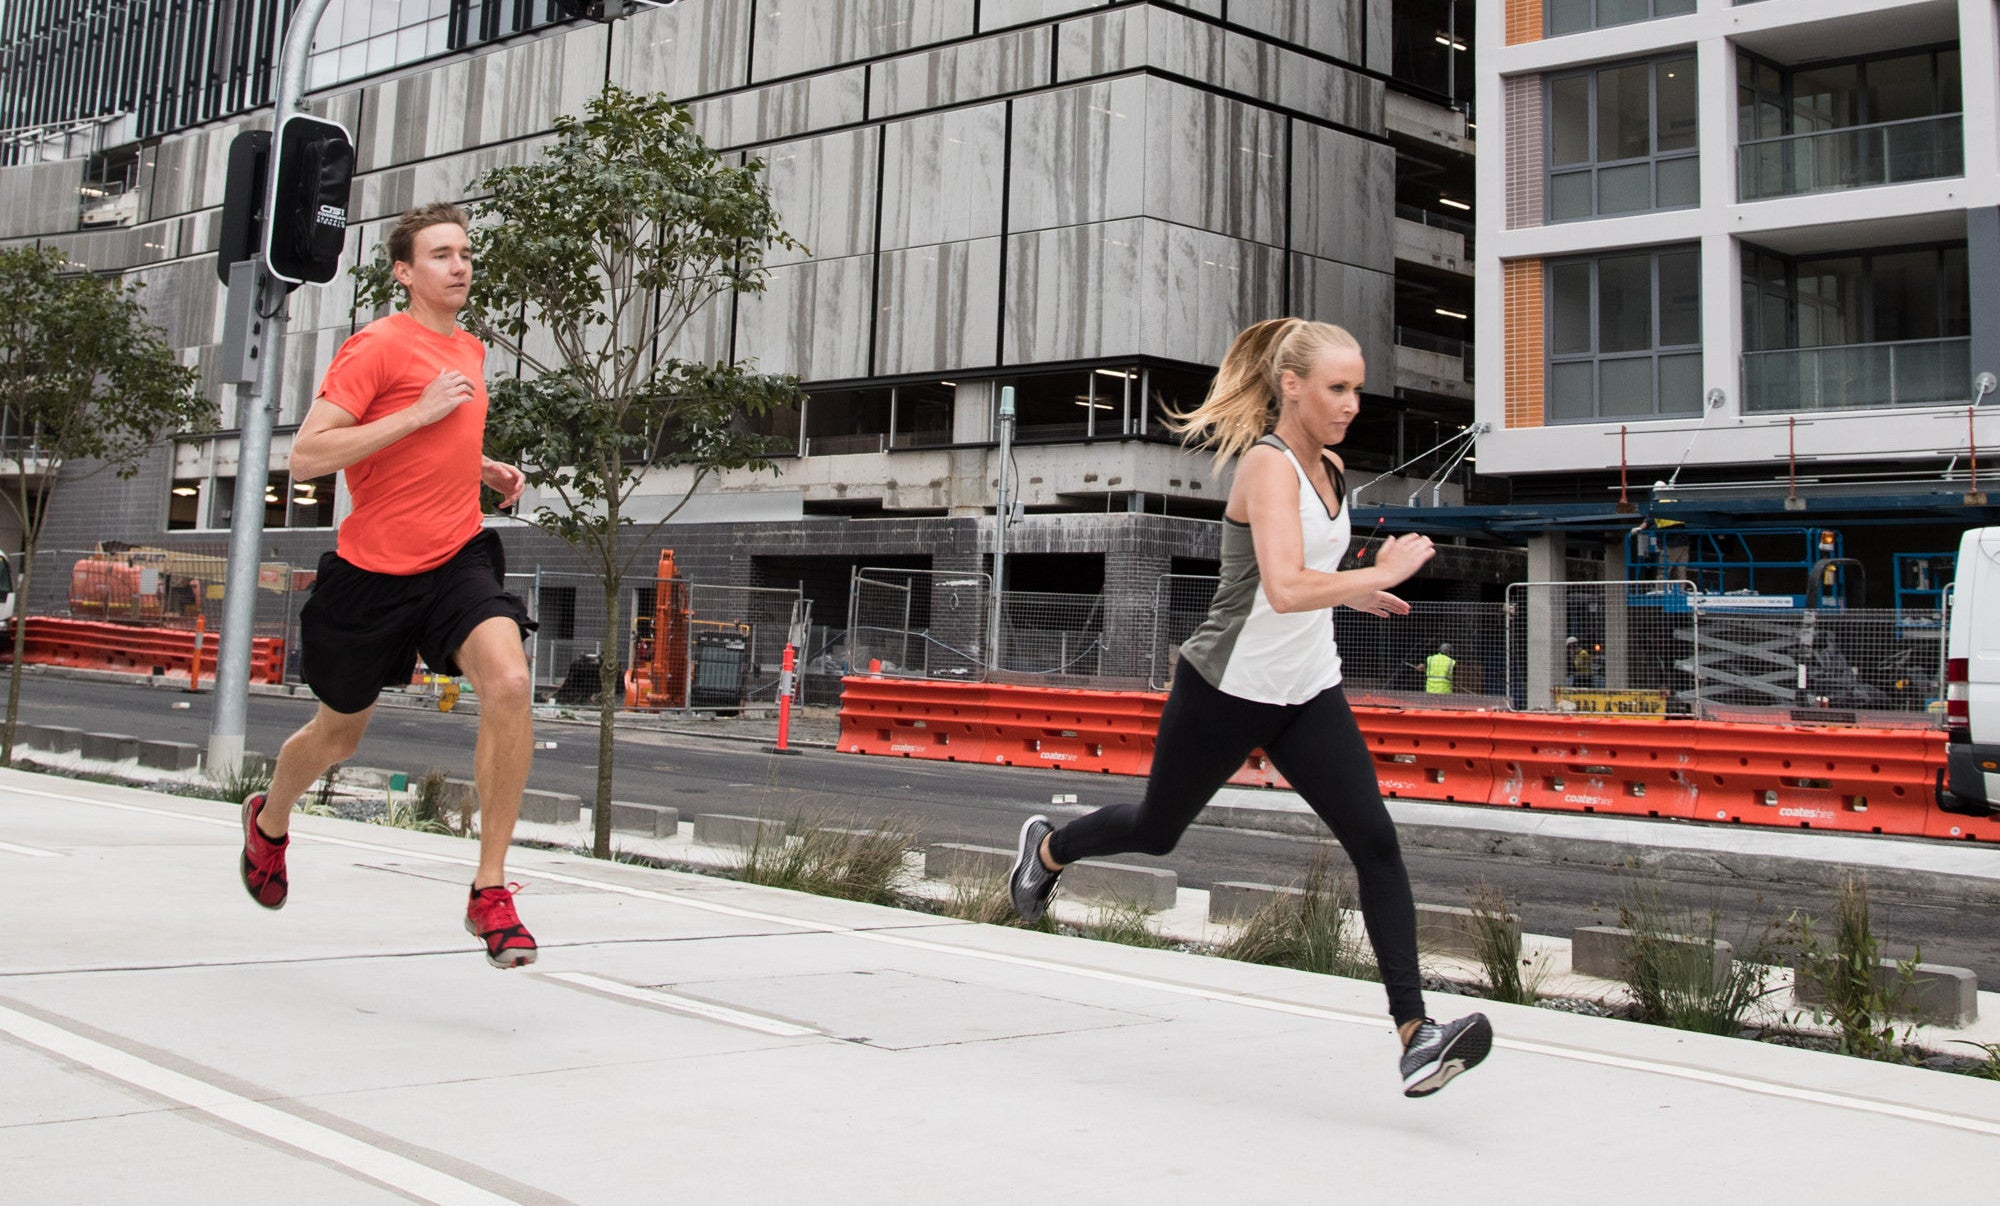 Male and female runners in the city wearing sustainable sportswear by Kusaga Athletic